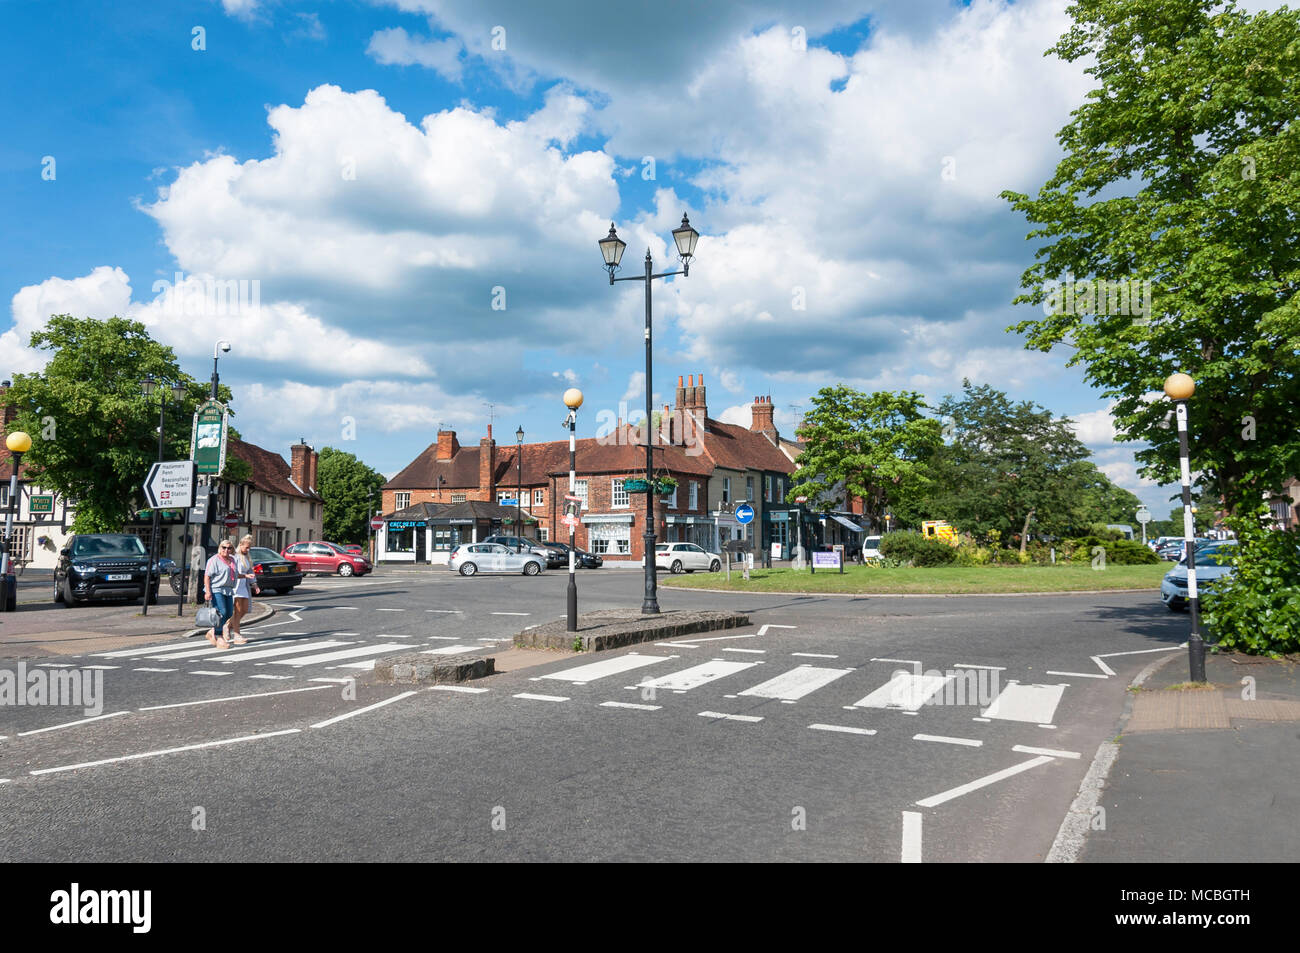 country town roundabout stockfotos country town roundabout bilder alamy. Black Bedroom Furniture Sets. Home Design Ideas